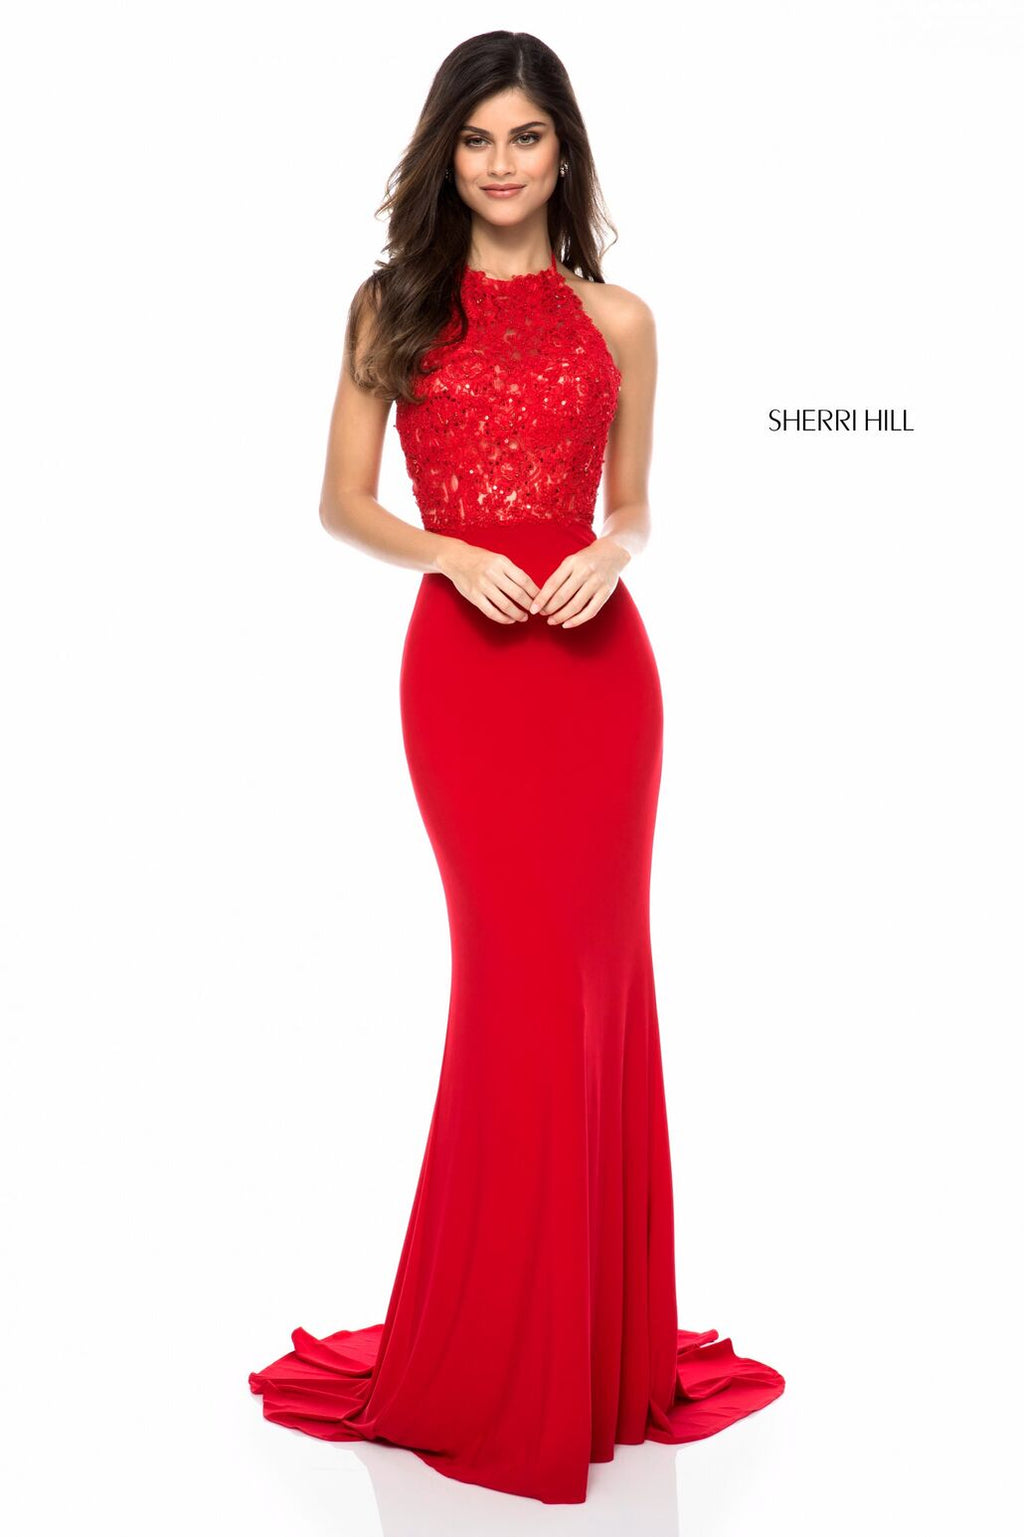 This Sherri Hill 51844 gown in red features a lace appliqué halter bodice and a jersey skirt with an open back.